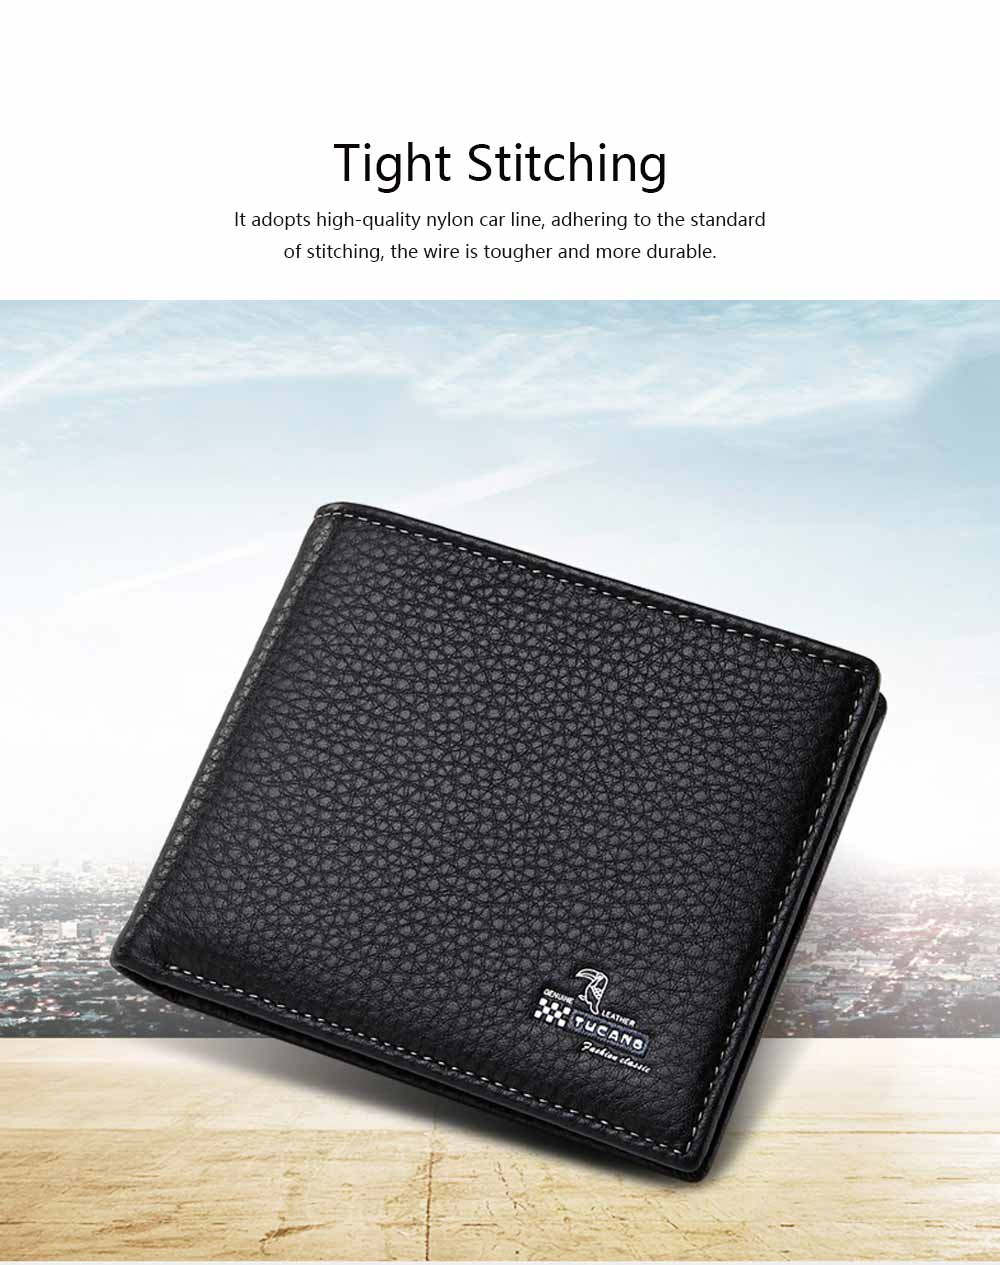 Bifold Side Flip Wallet, High-End Business Men Wallet, Men's Multifunctional Handbag, Extra Capacity Travel Wallet 4